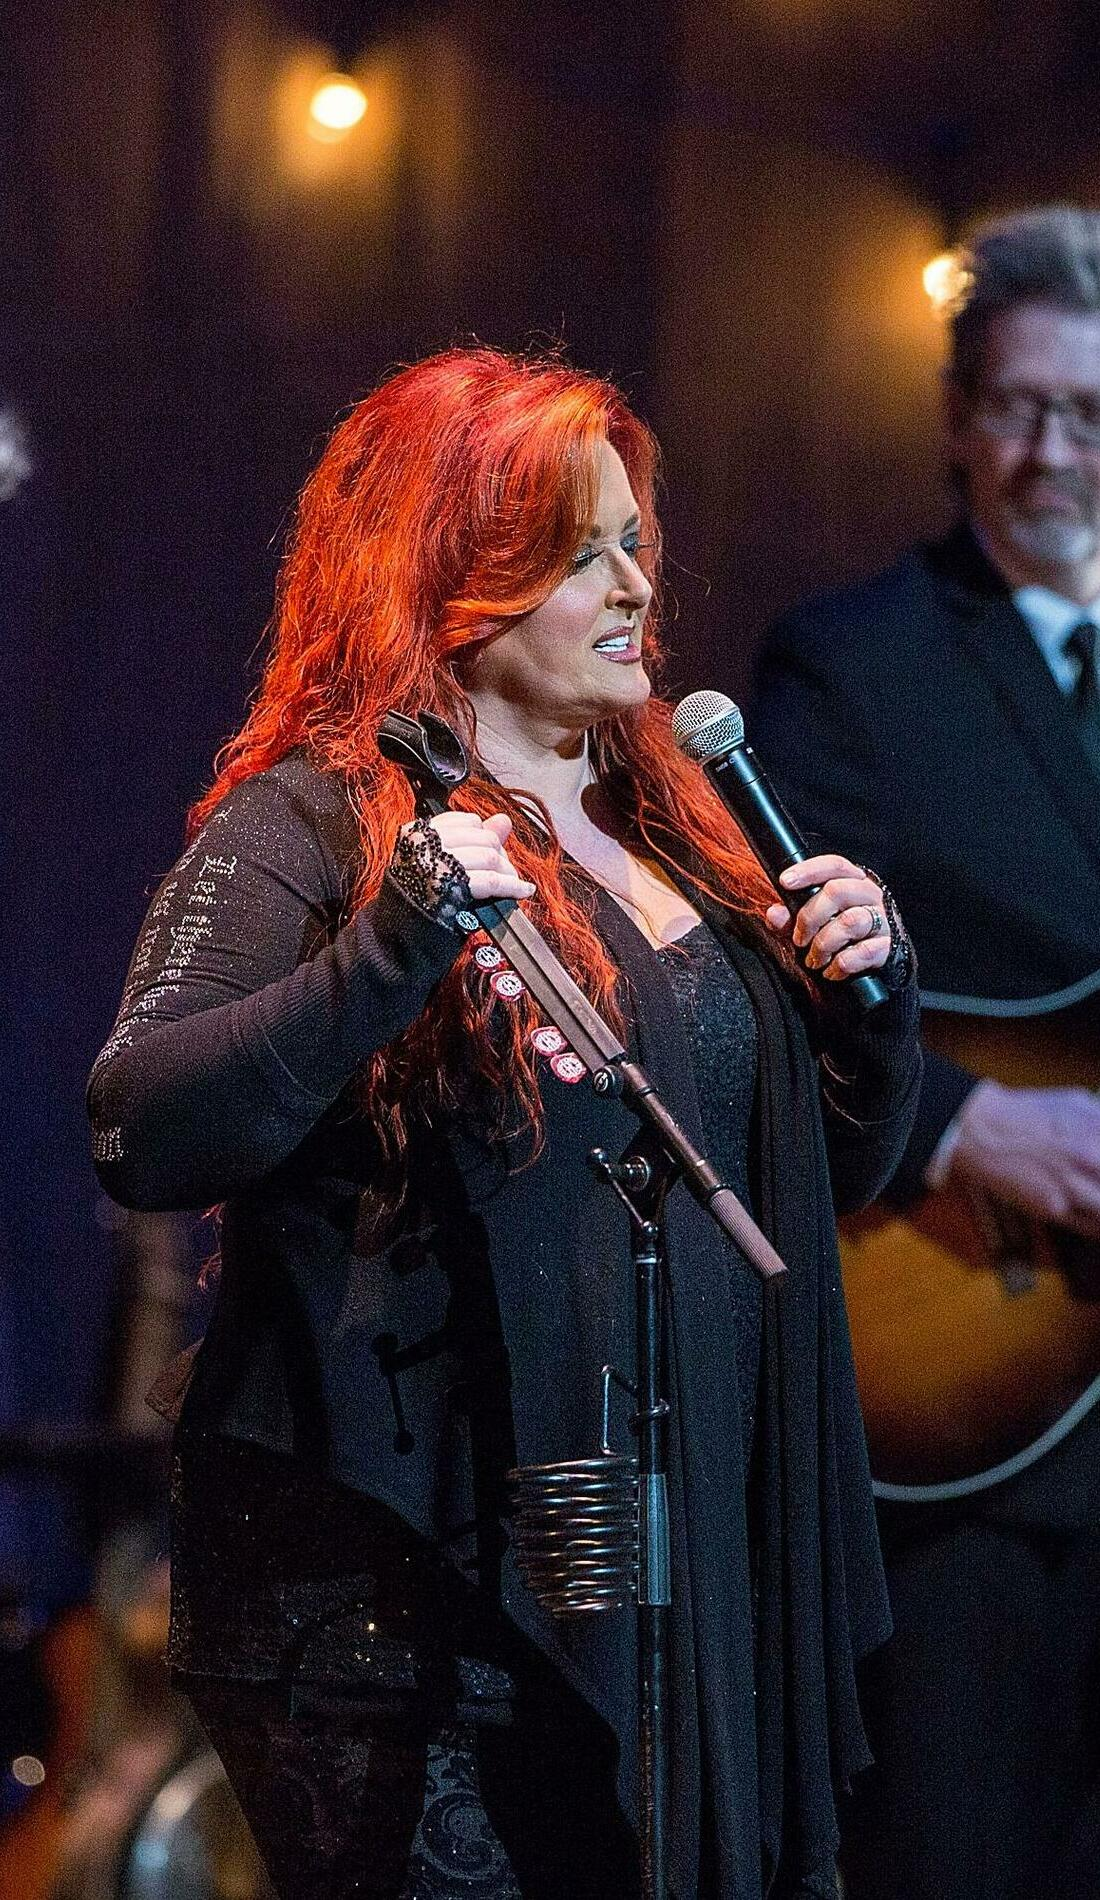 A Wynonna & The Big Noise live event